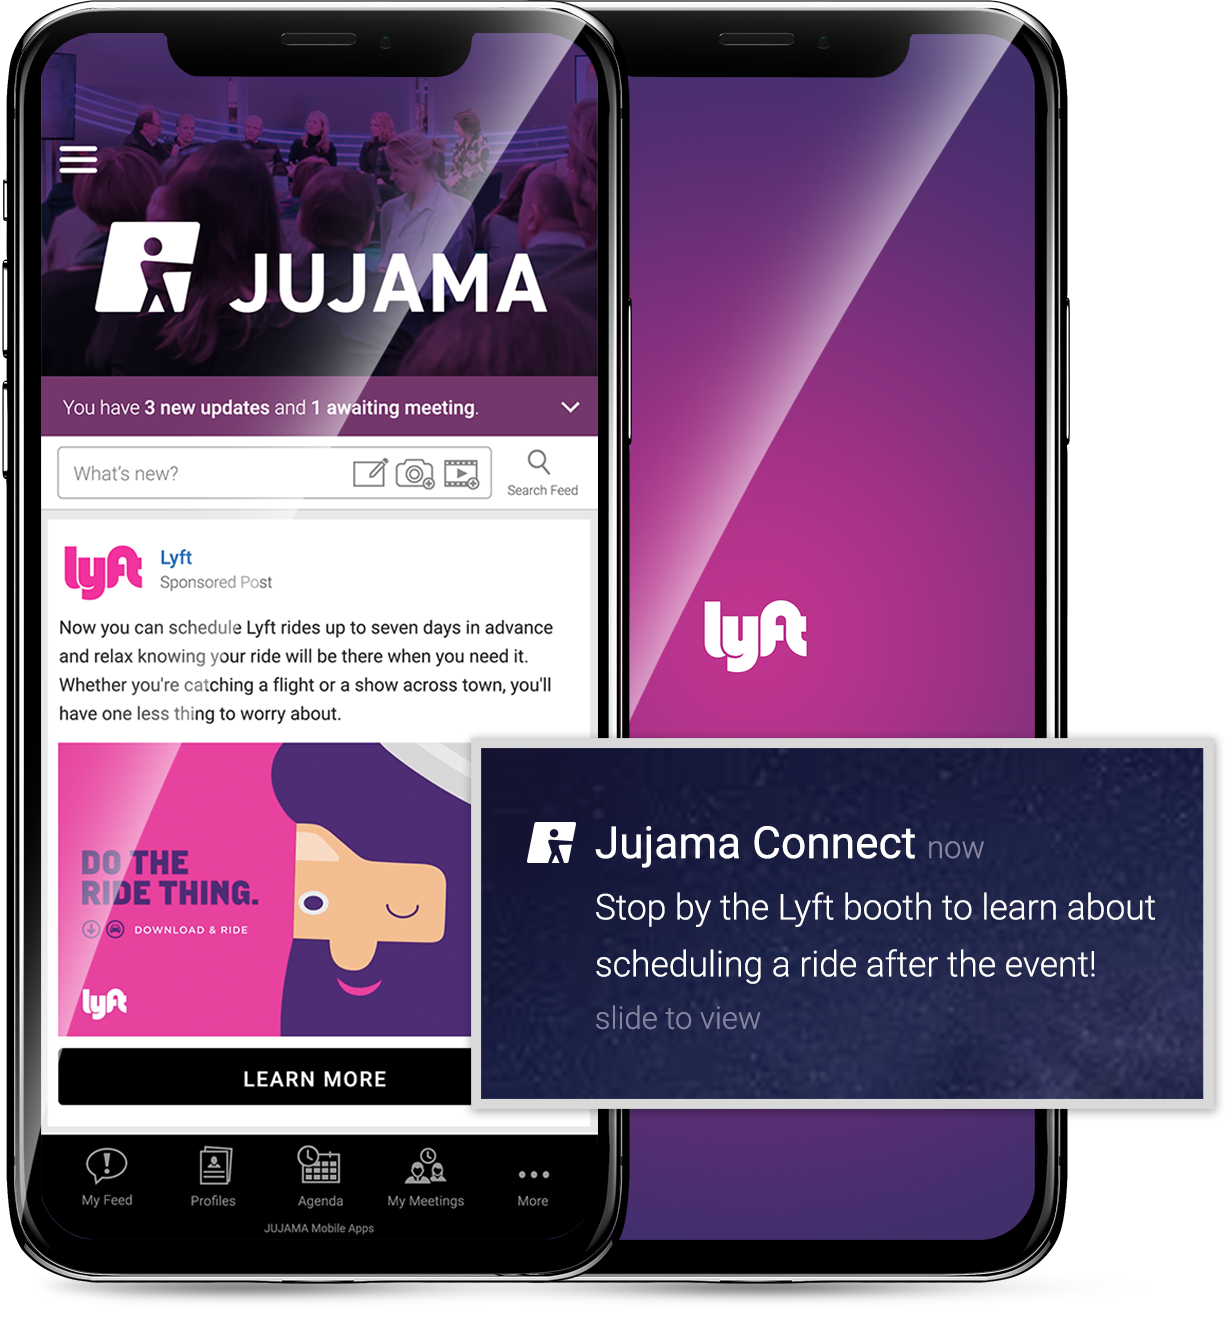 Jujama offers many sponsorship opportunities